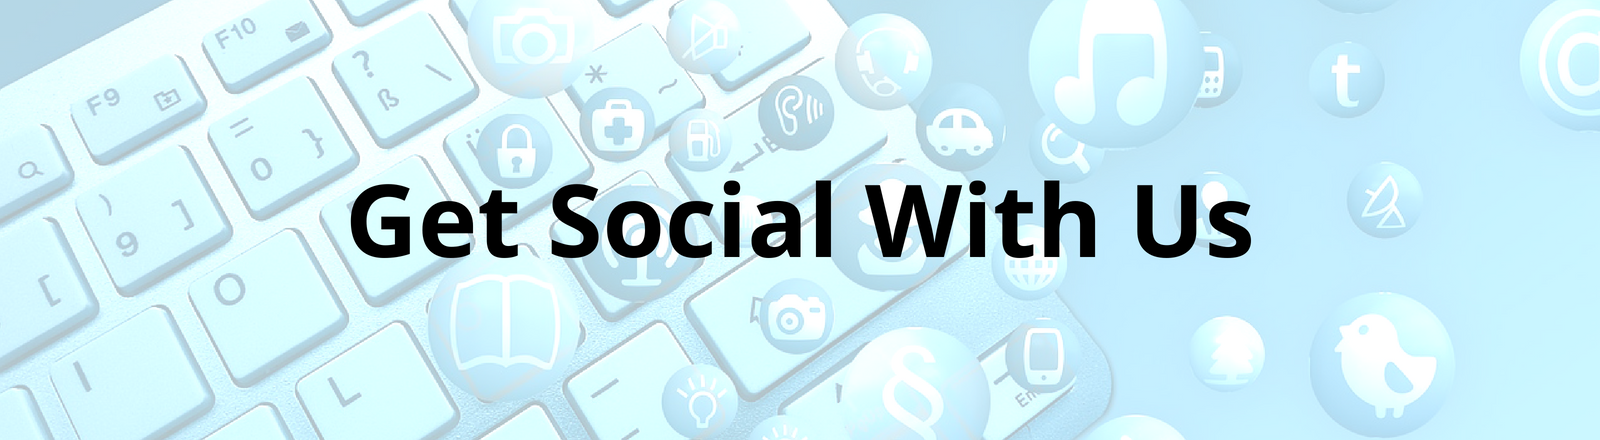 Get social with us banner for landing page